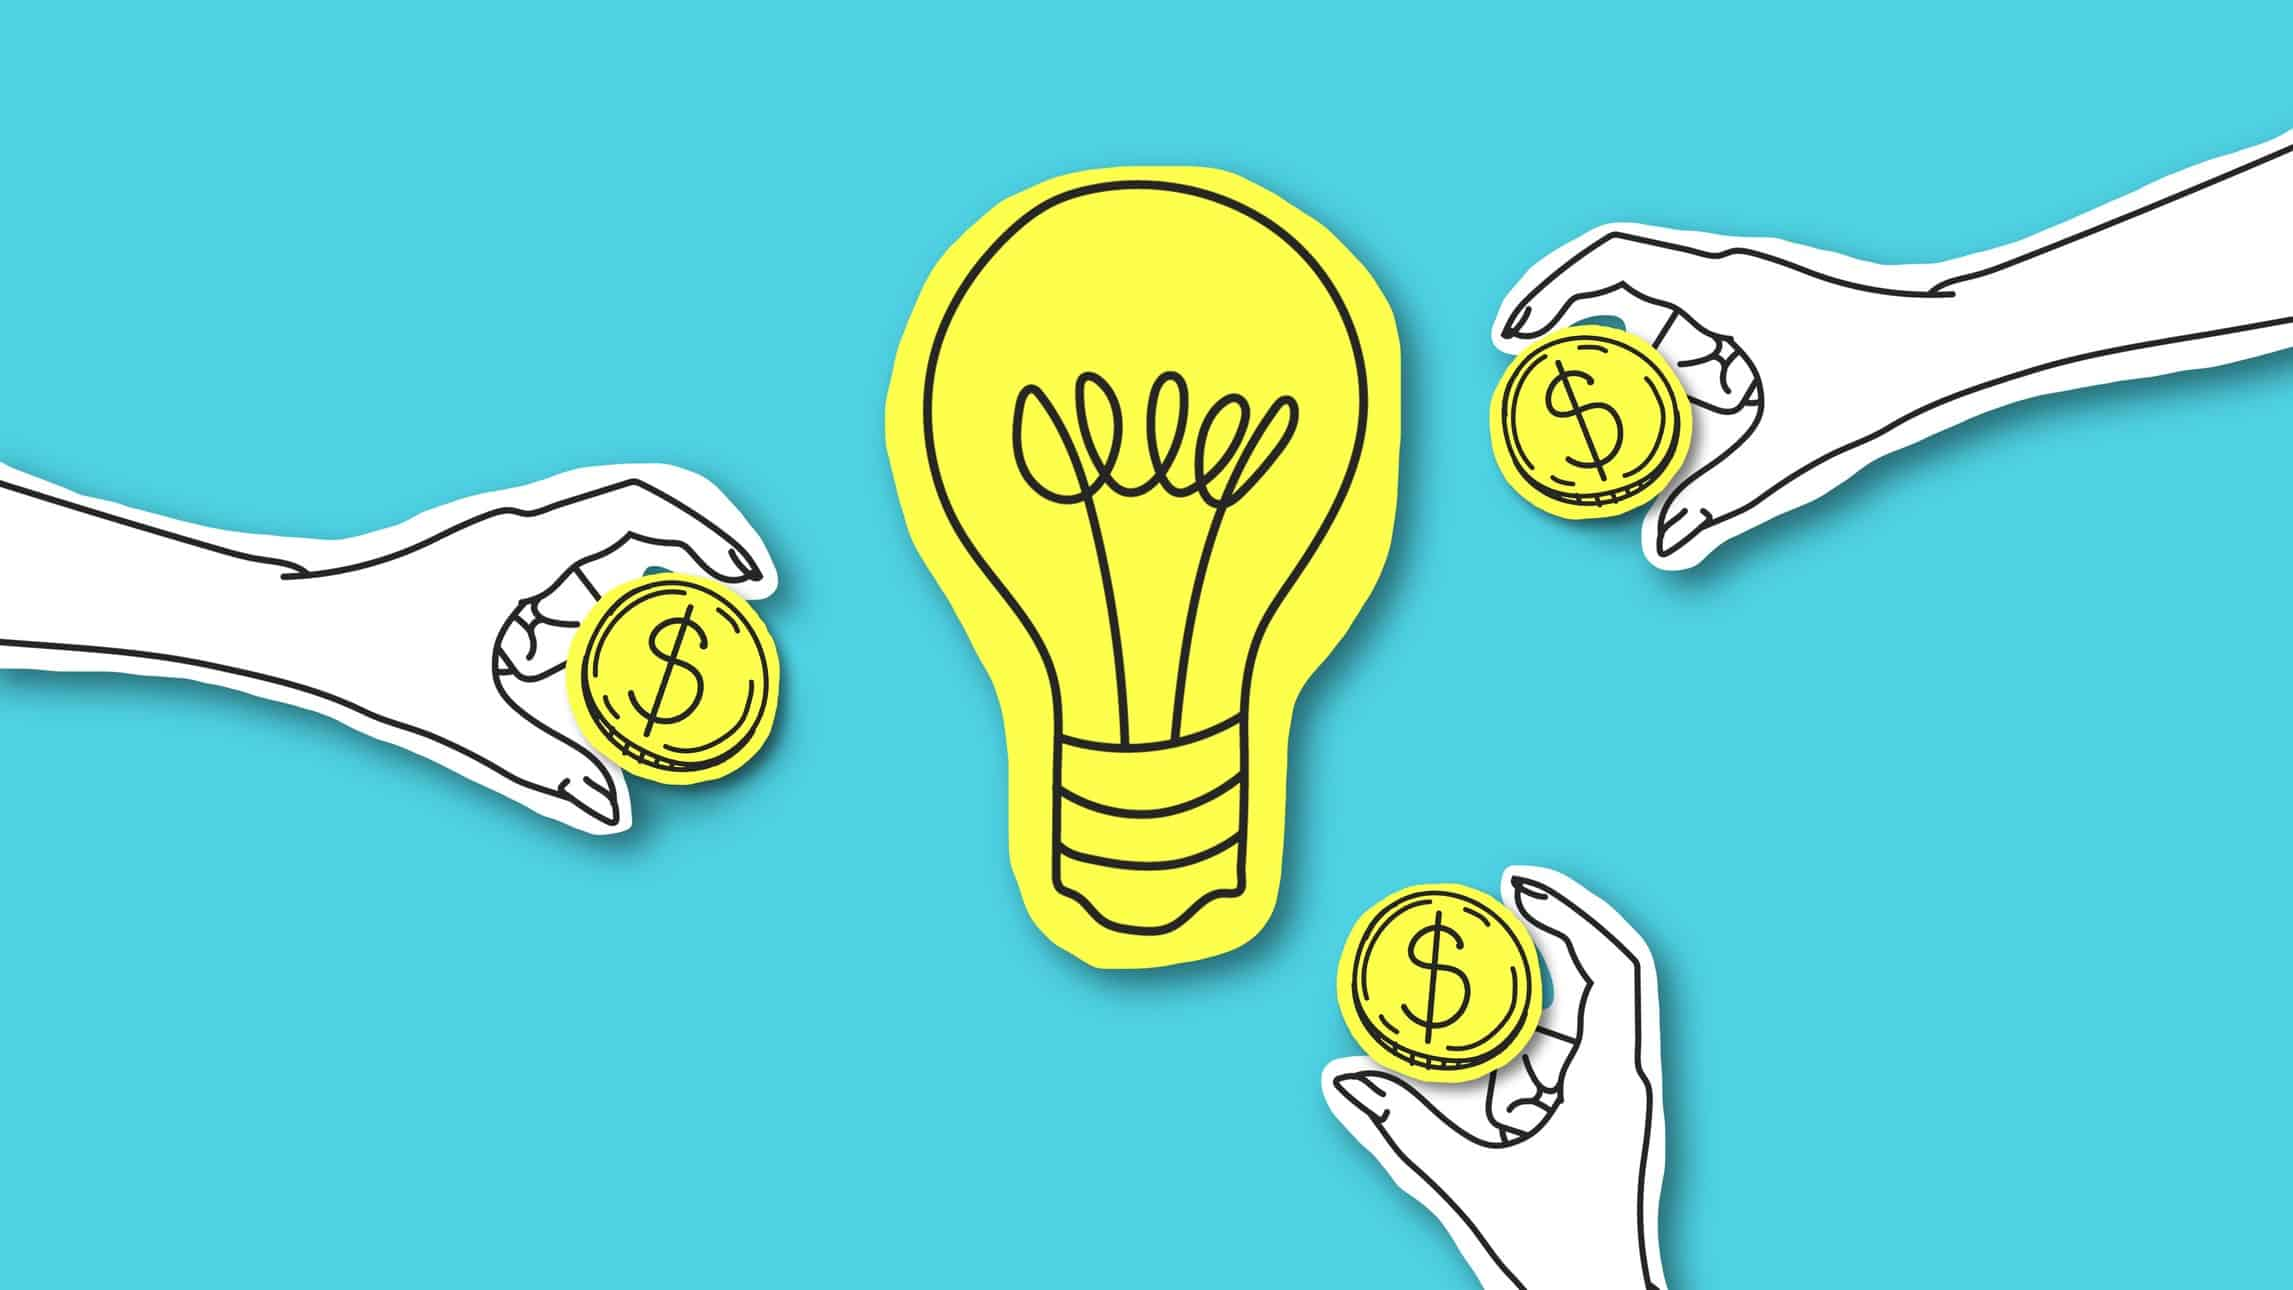 Cutout icon of a lightbulb surrounded by 3 hands holding out gold coins